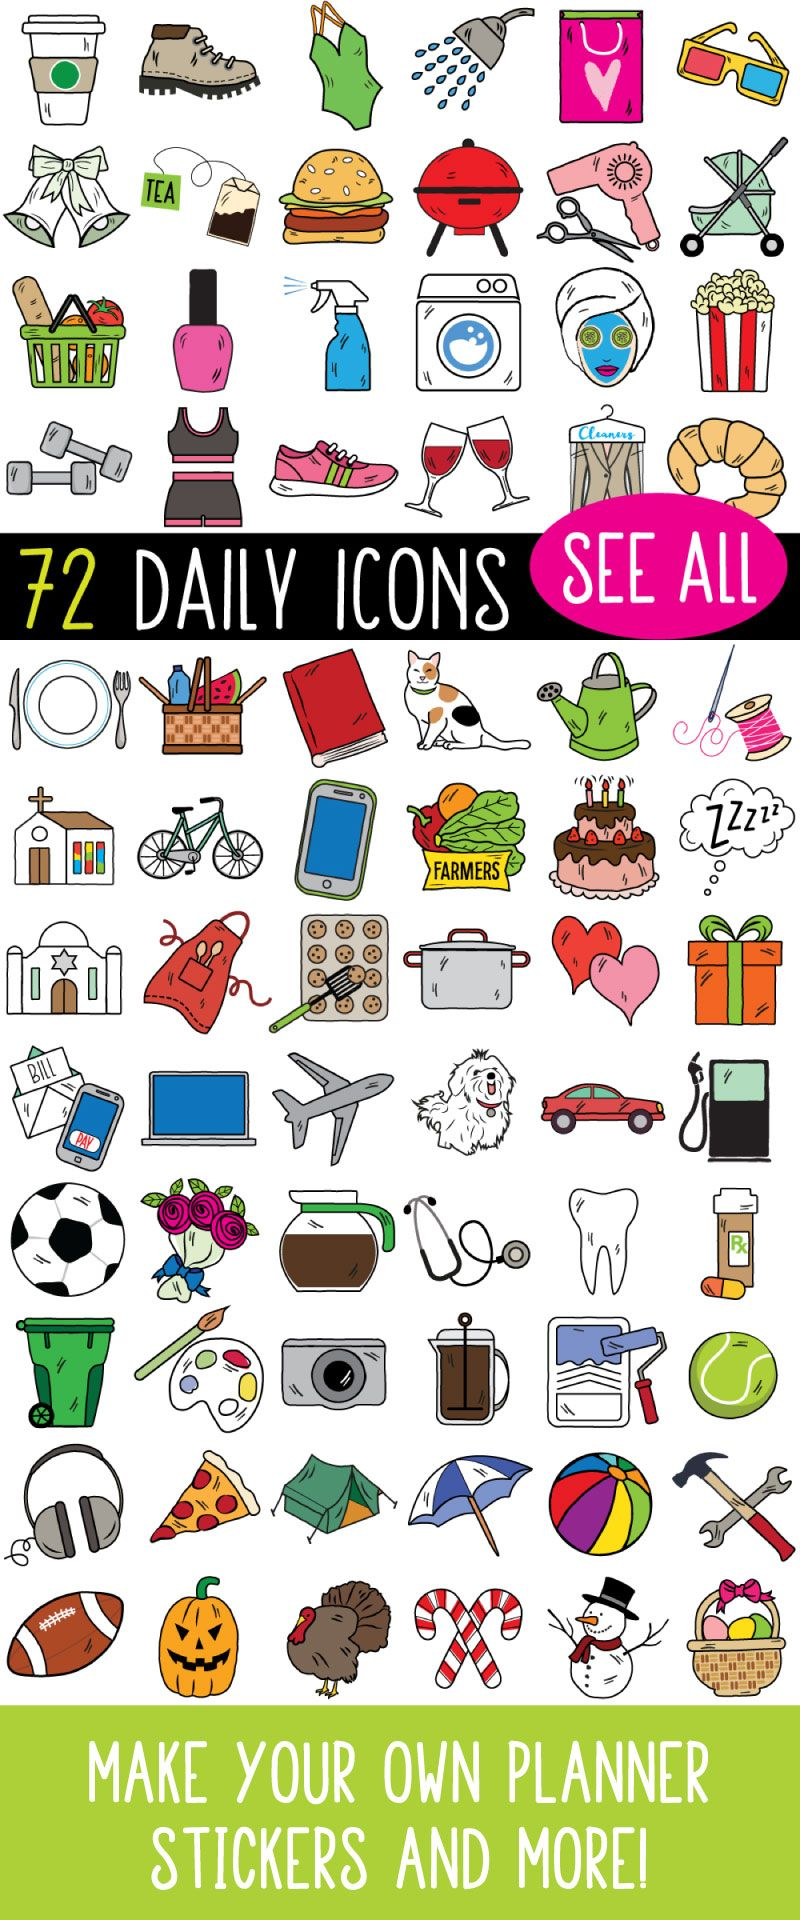 Everyday icon clipart for planners, bullet journals and more.